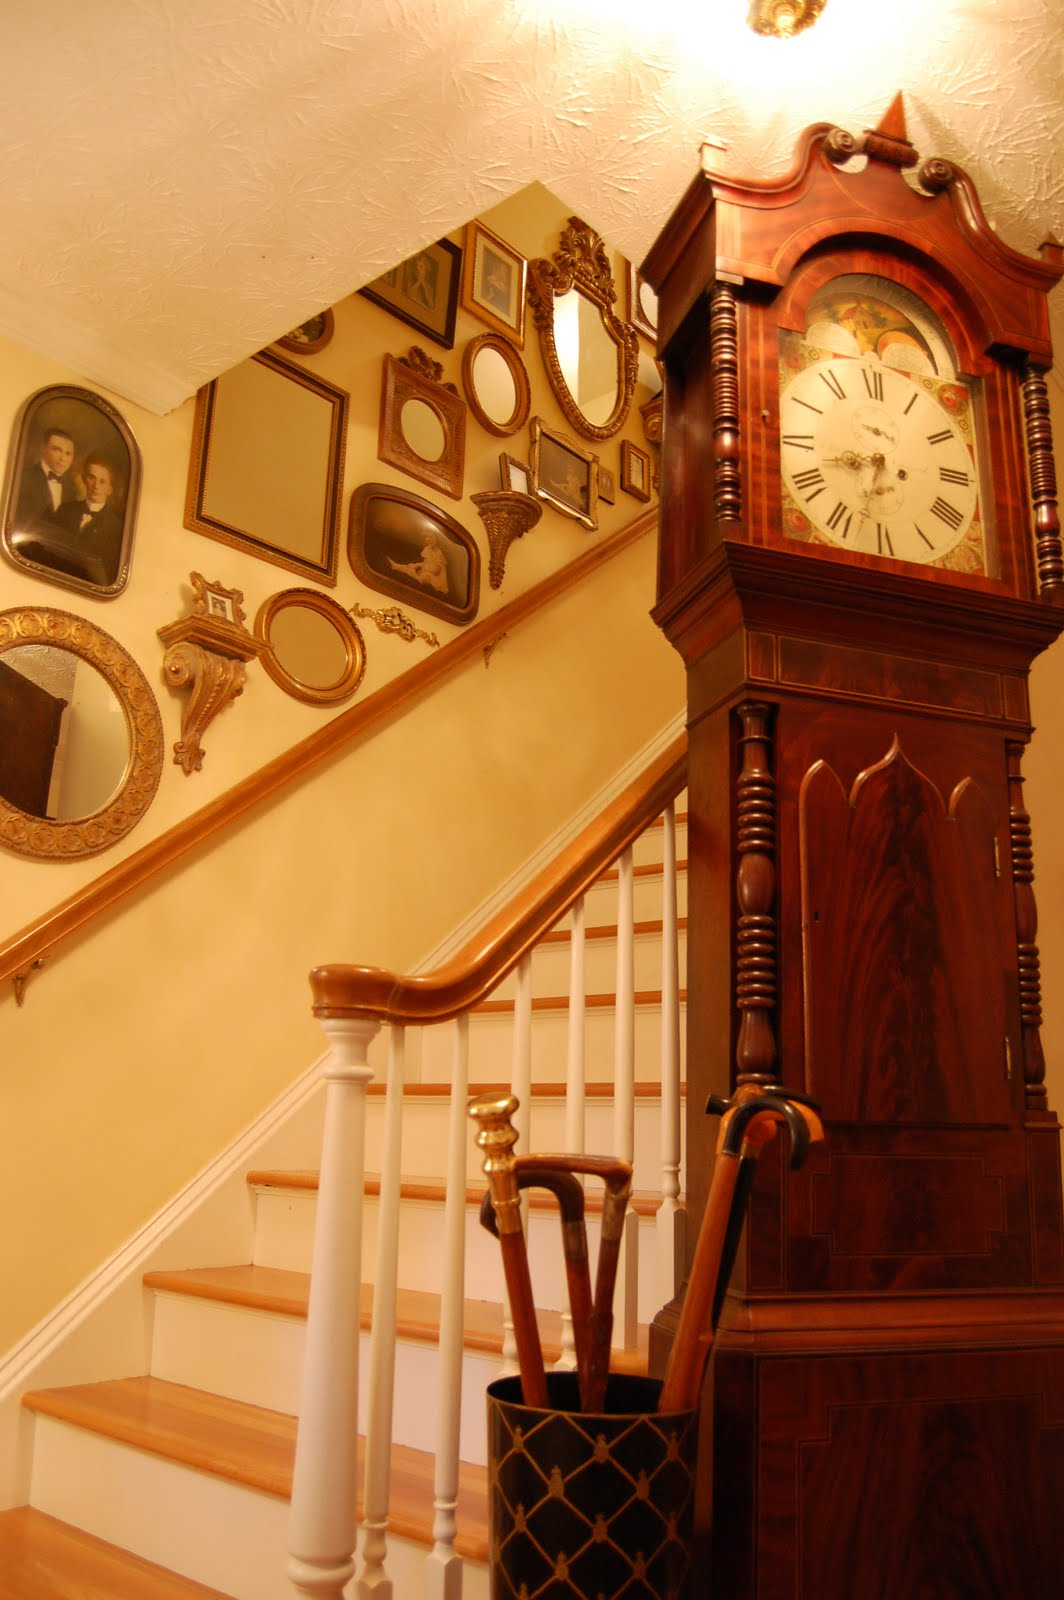 Decorating Staircase Walls With Vintage Photos And Mirrors Between